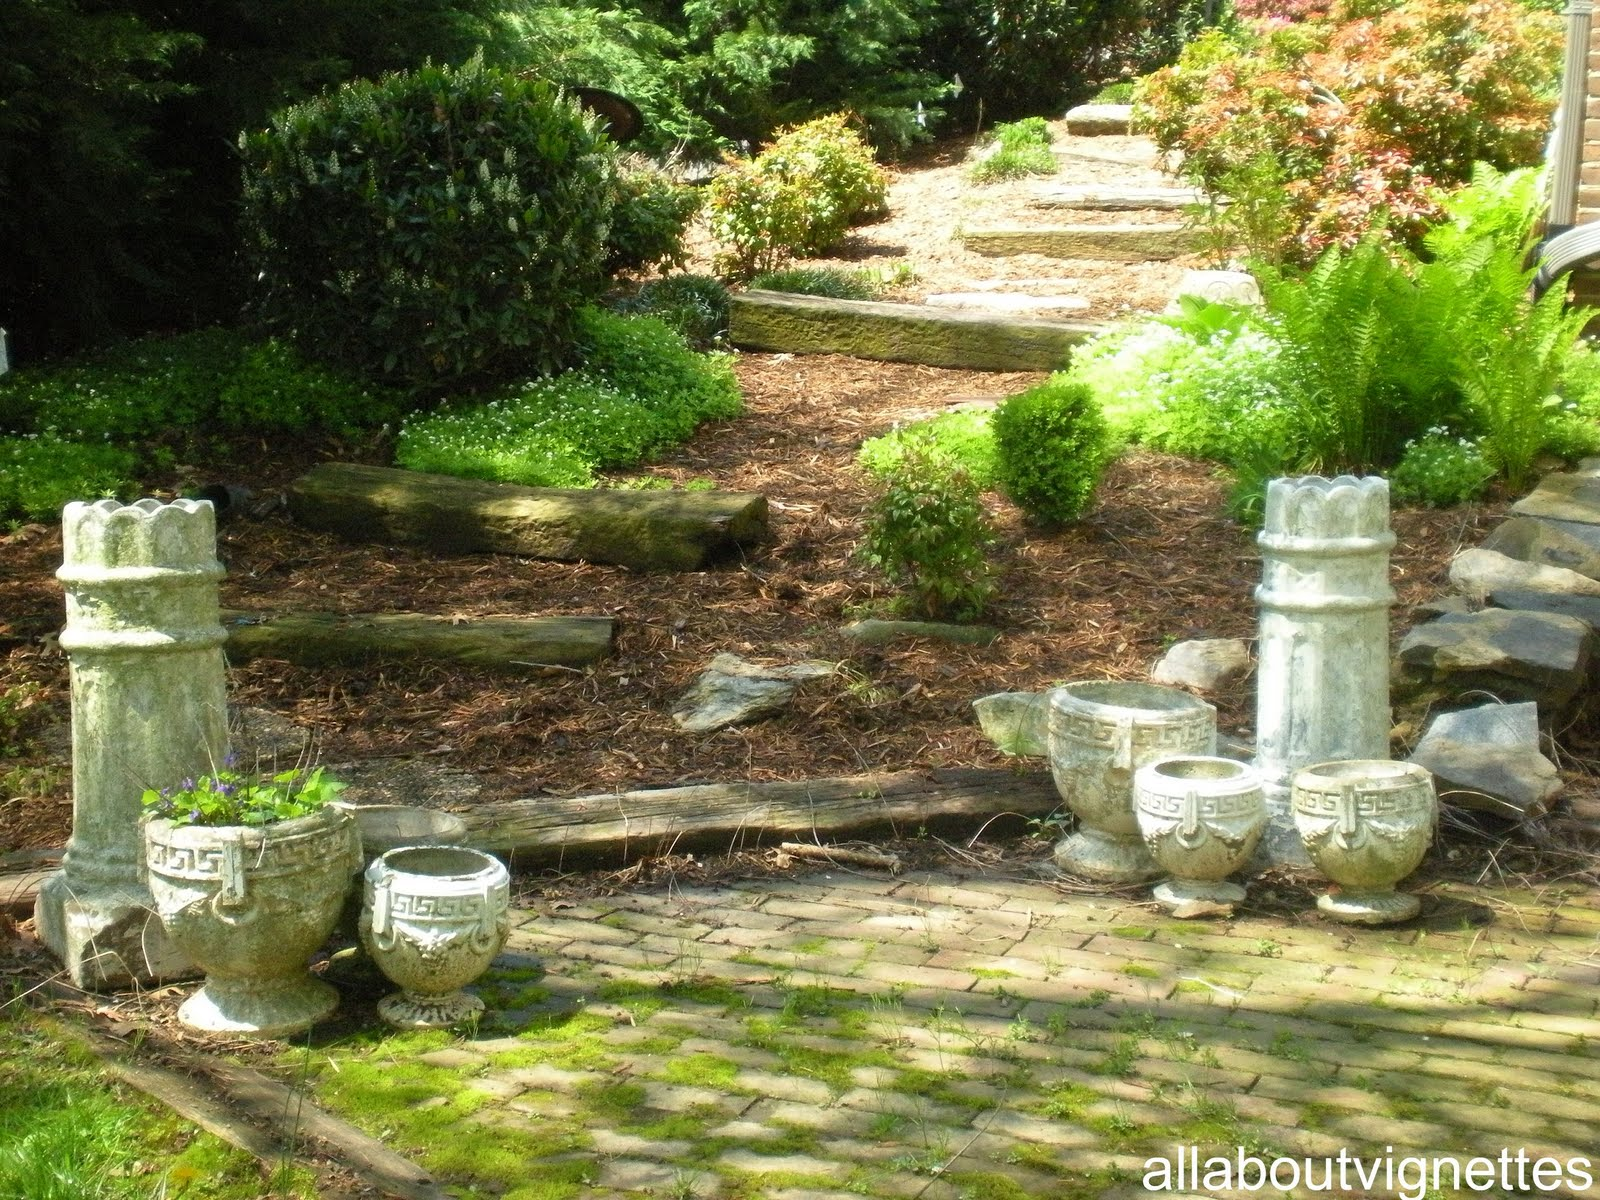 Mays Garden: All About Vignettes: Clay Chimney Pots And My May Garden